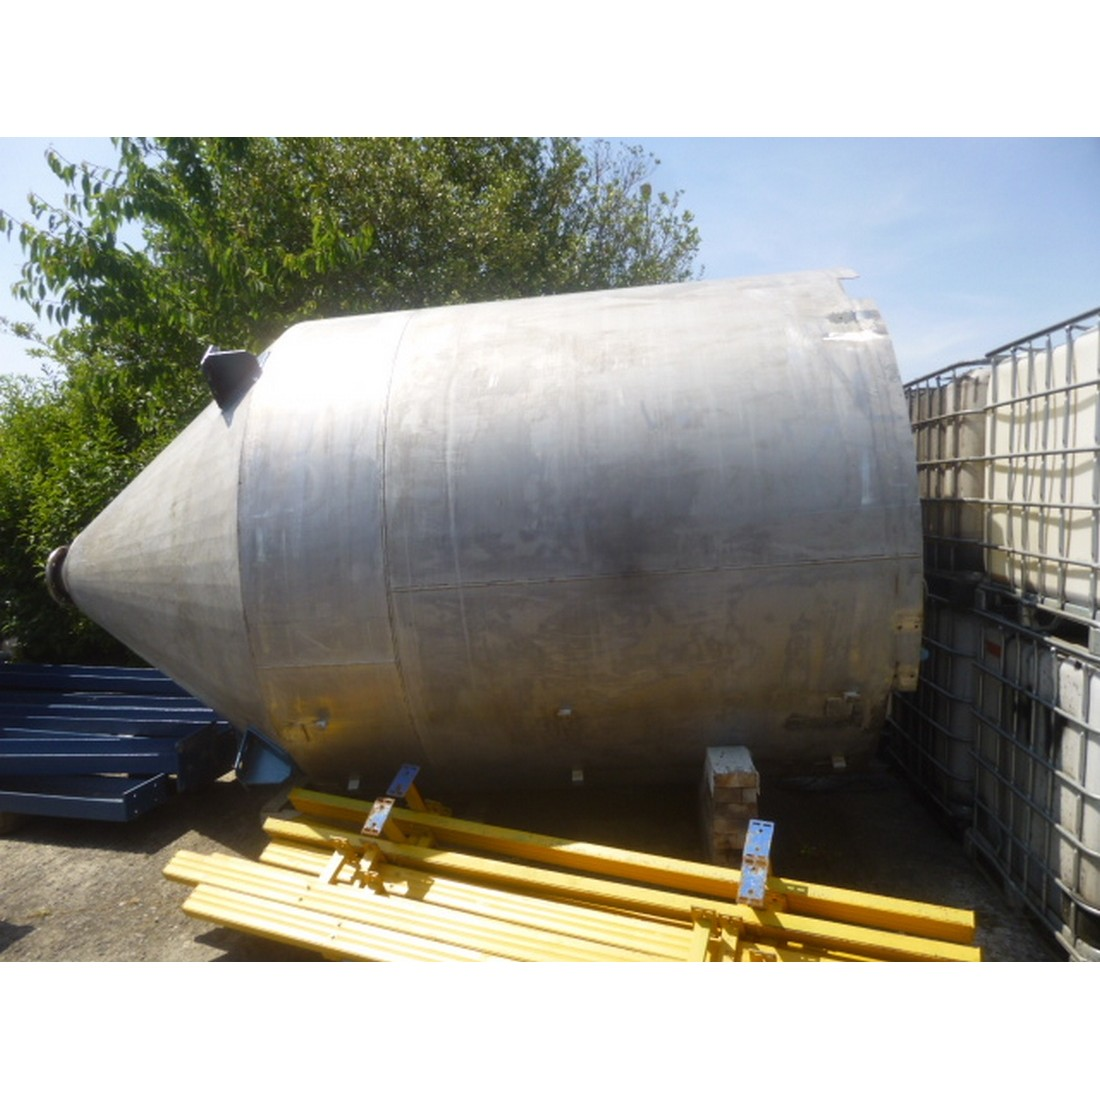 R11TB893 Stainless steel Silo - 15000 liters - visible by appointment